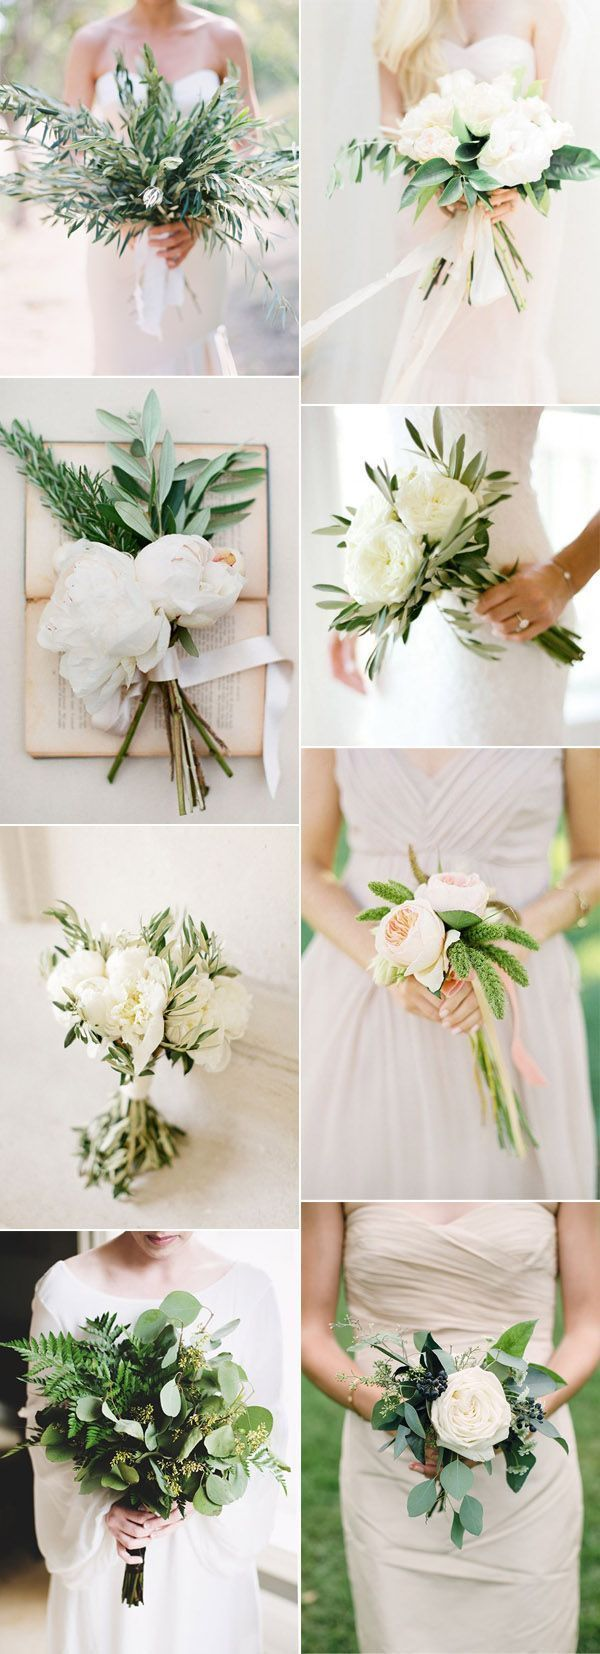 4471 best Wedding DIY images on Pinterest | Wedding ideas, Weddings ...